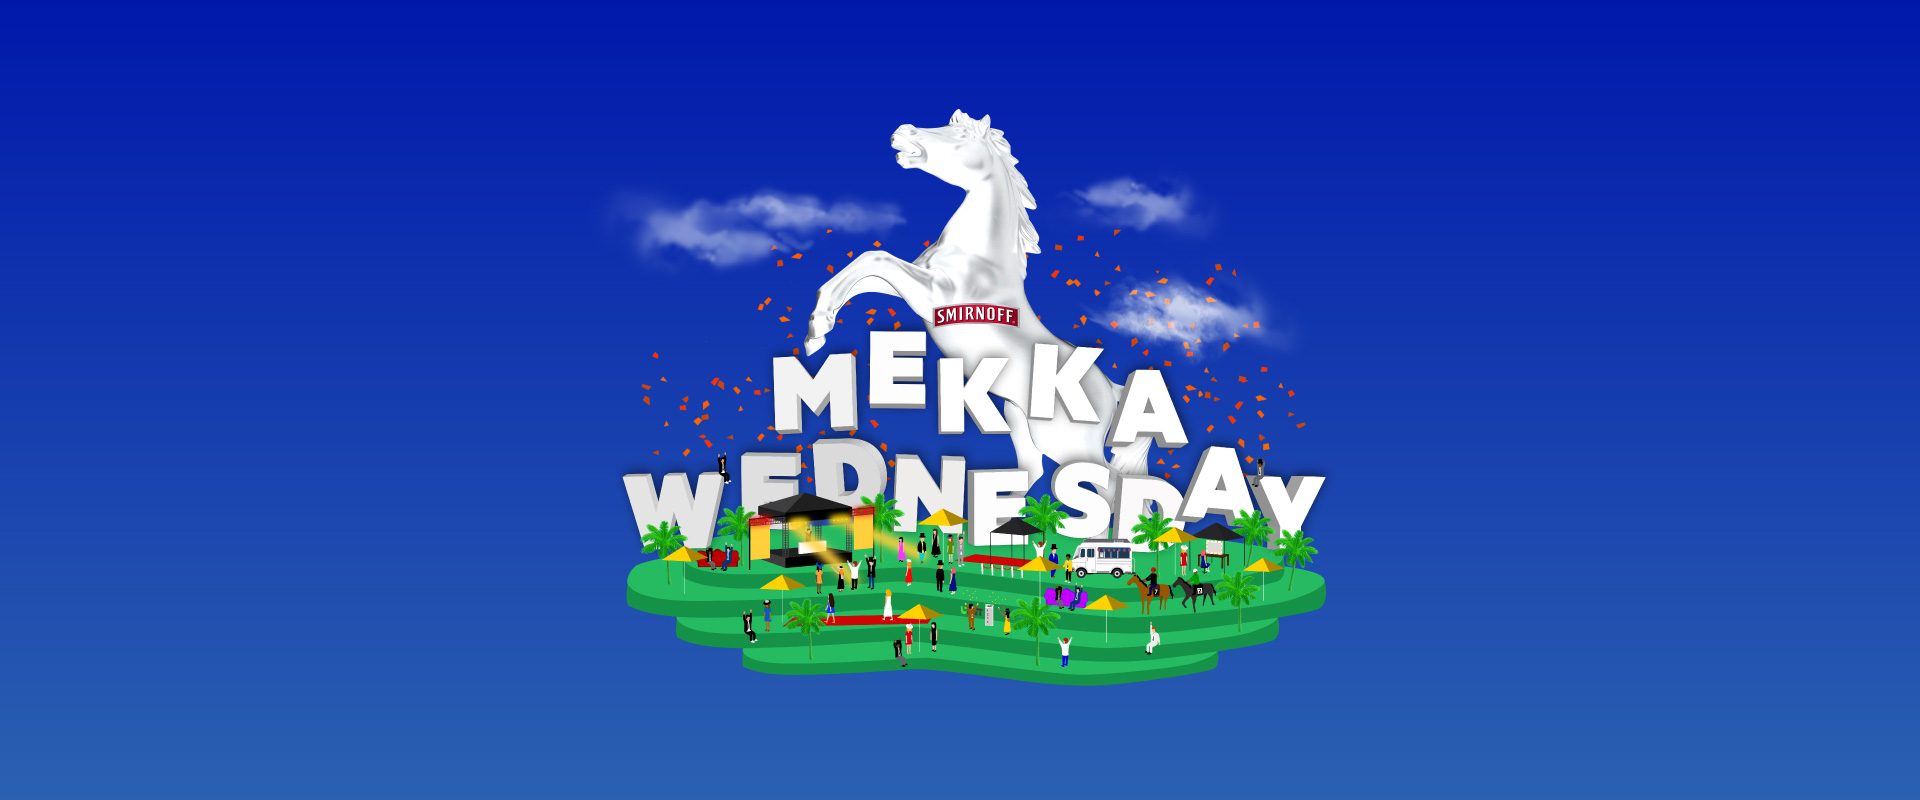 Brisbane's biggest party - Mekka Wednesday. Enjoy the races, the festival vibe and some of Australia's most renowned DJs and headliners.